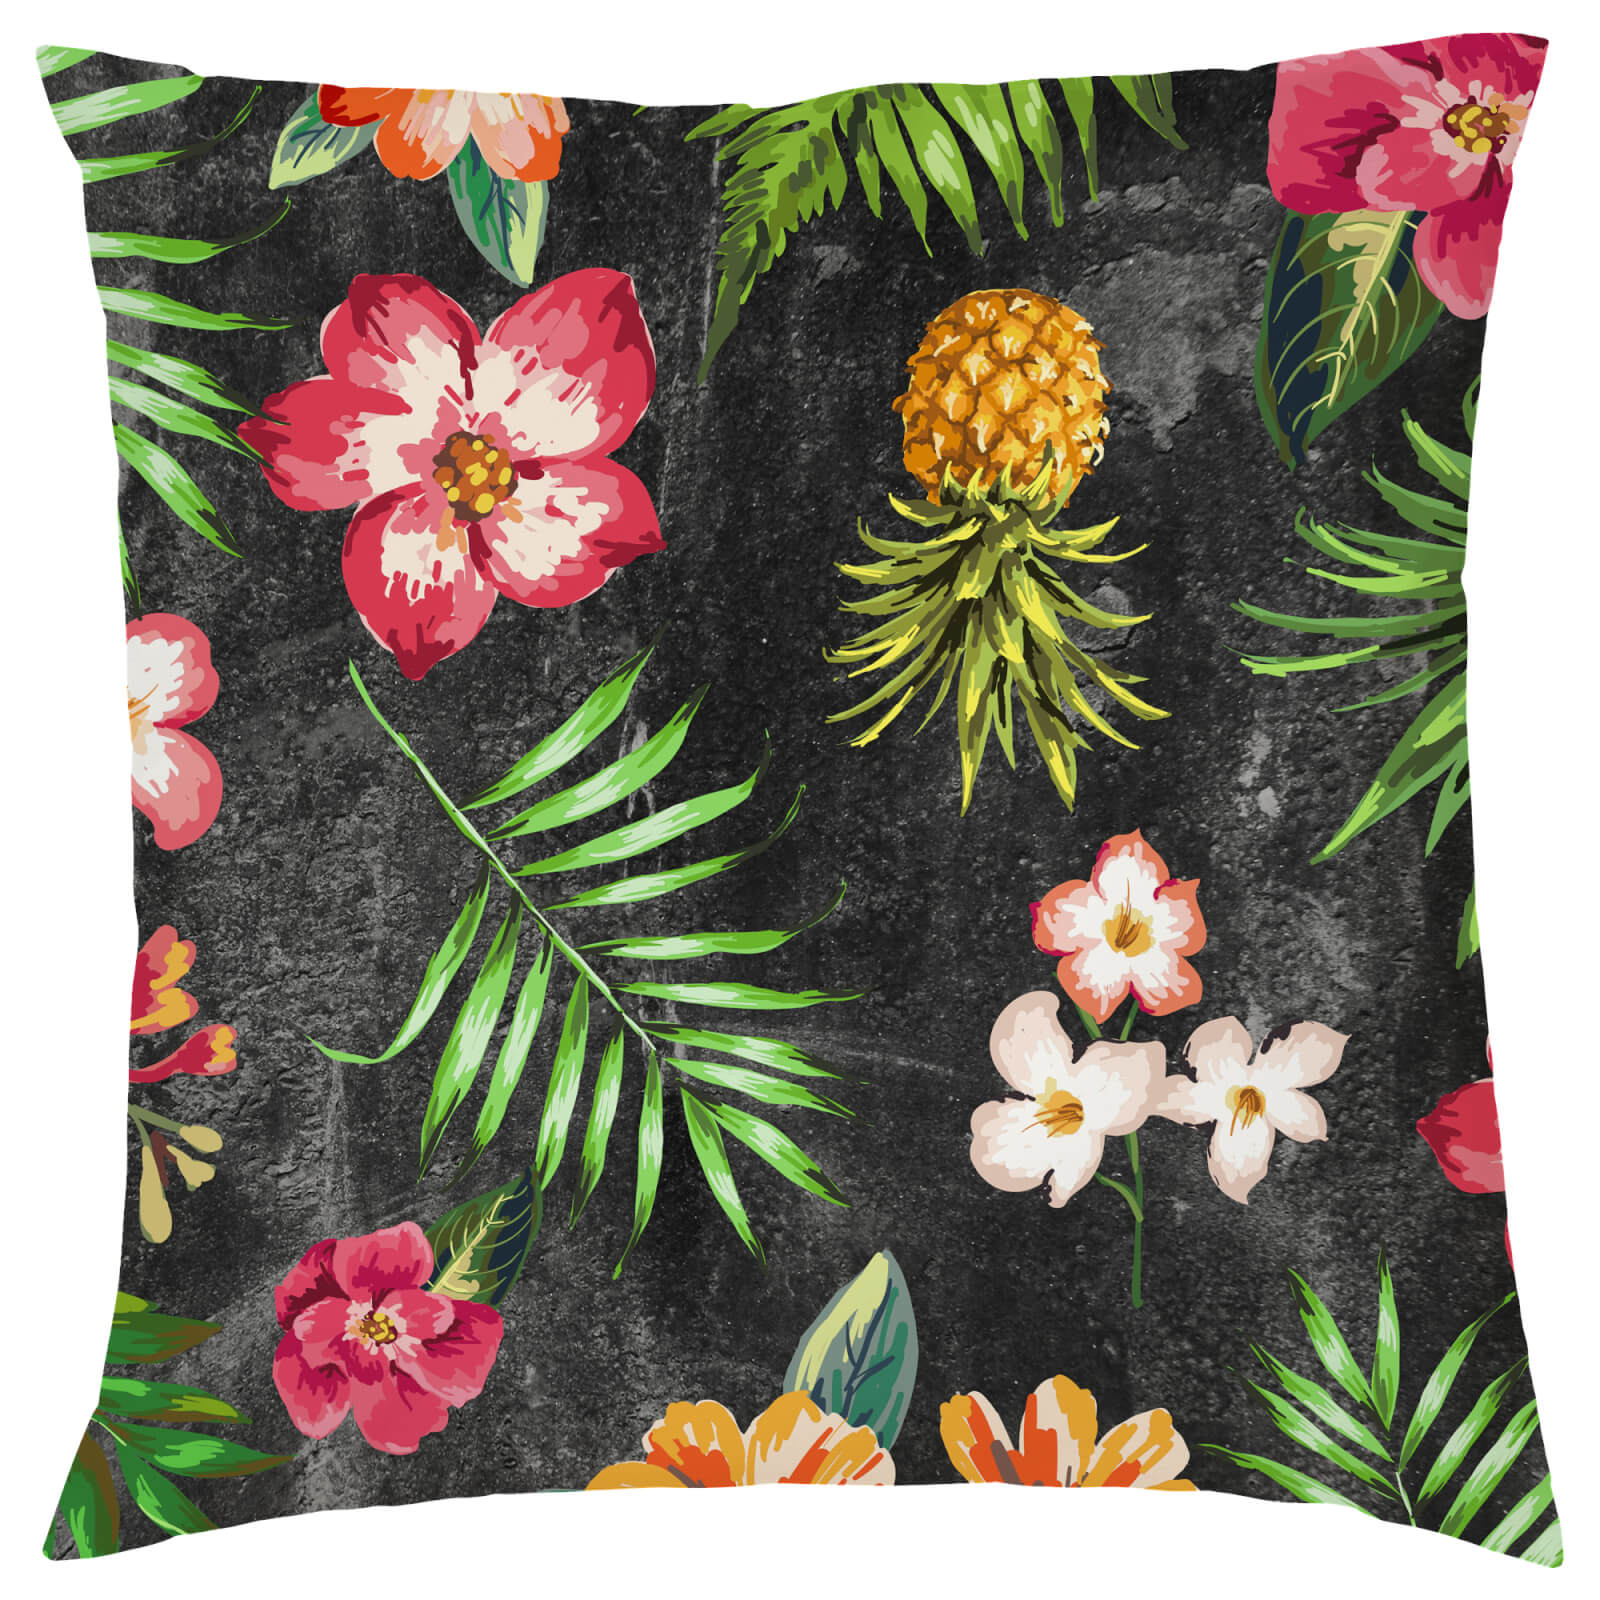 Tropical Pineapple Cushion - Black